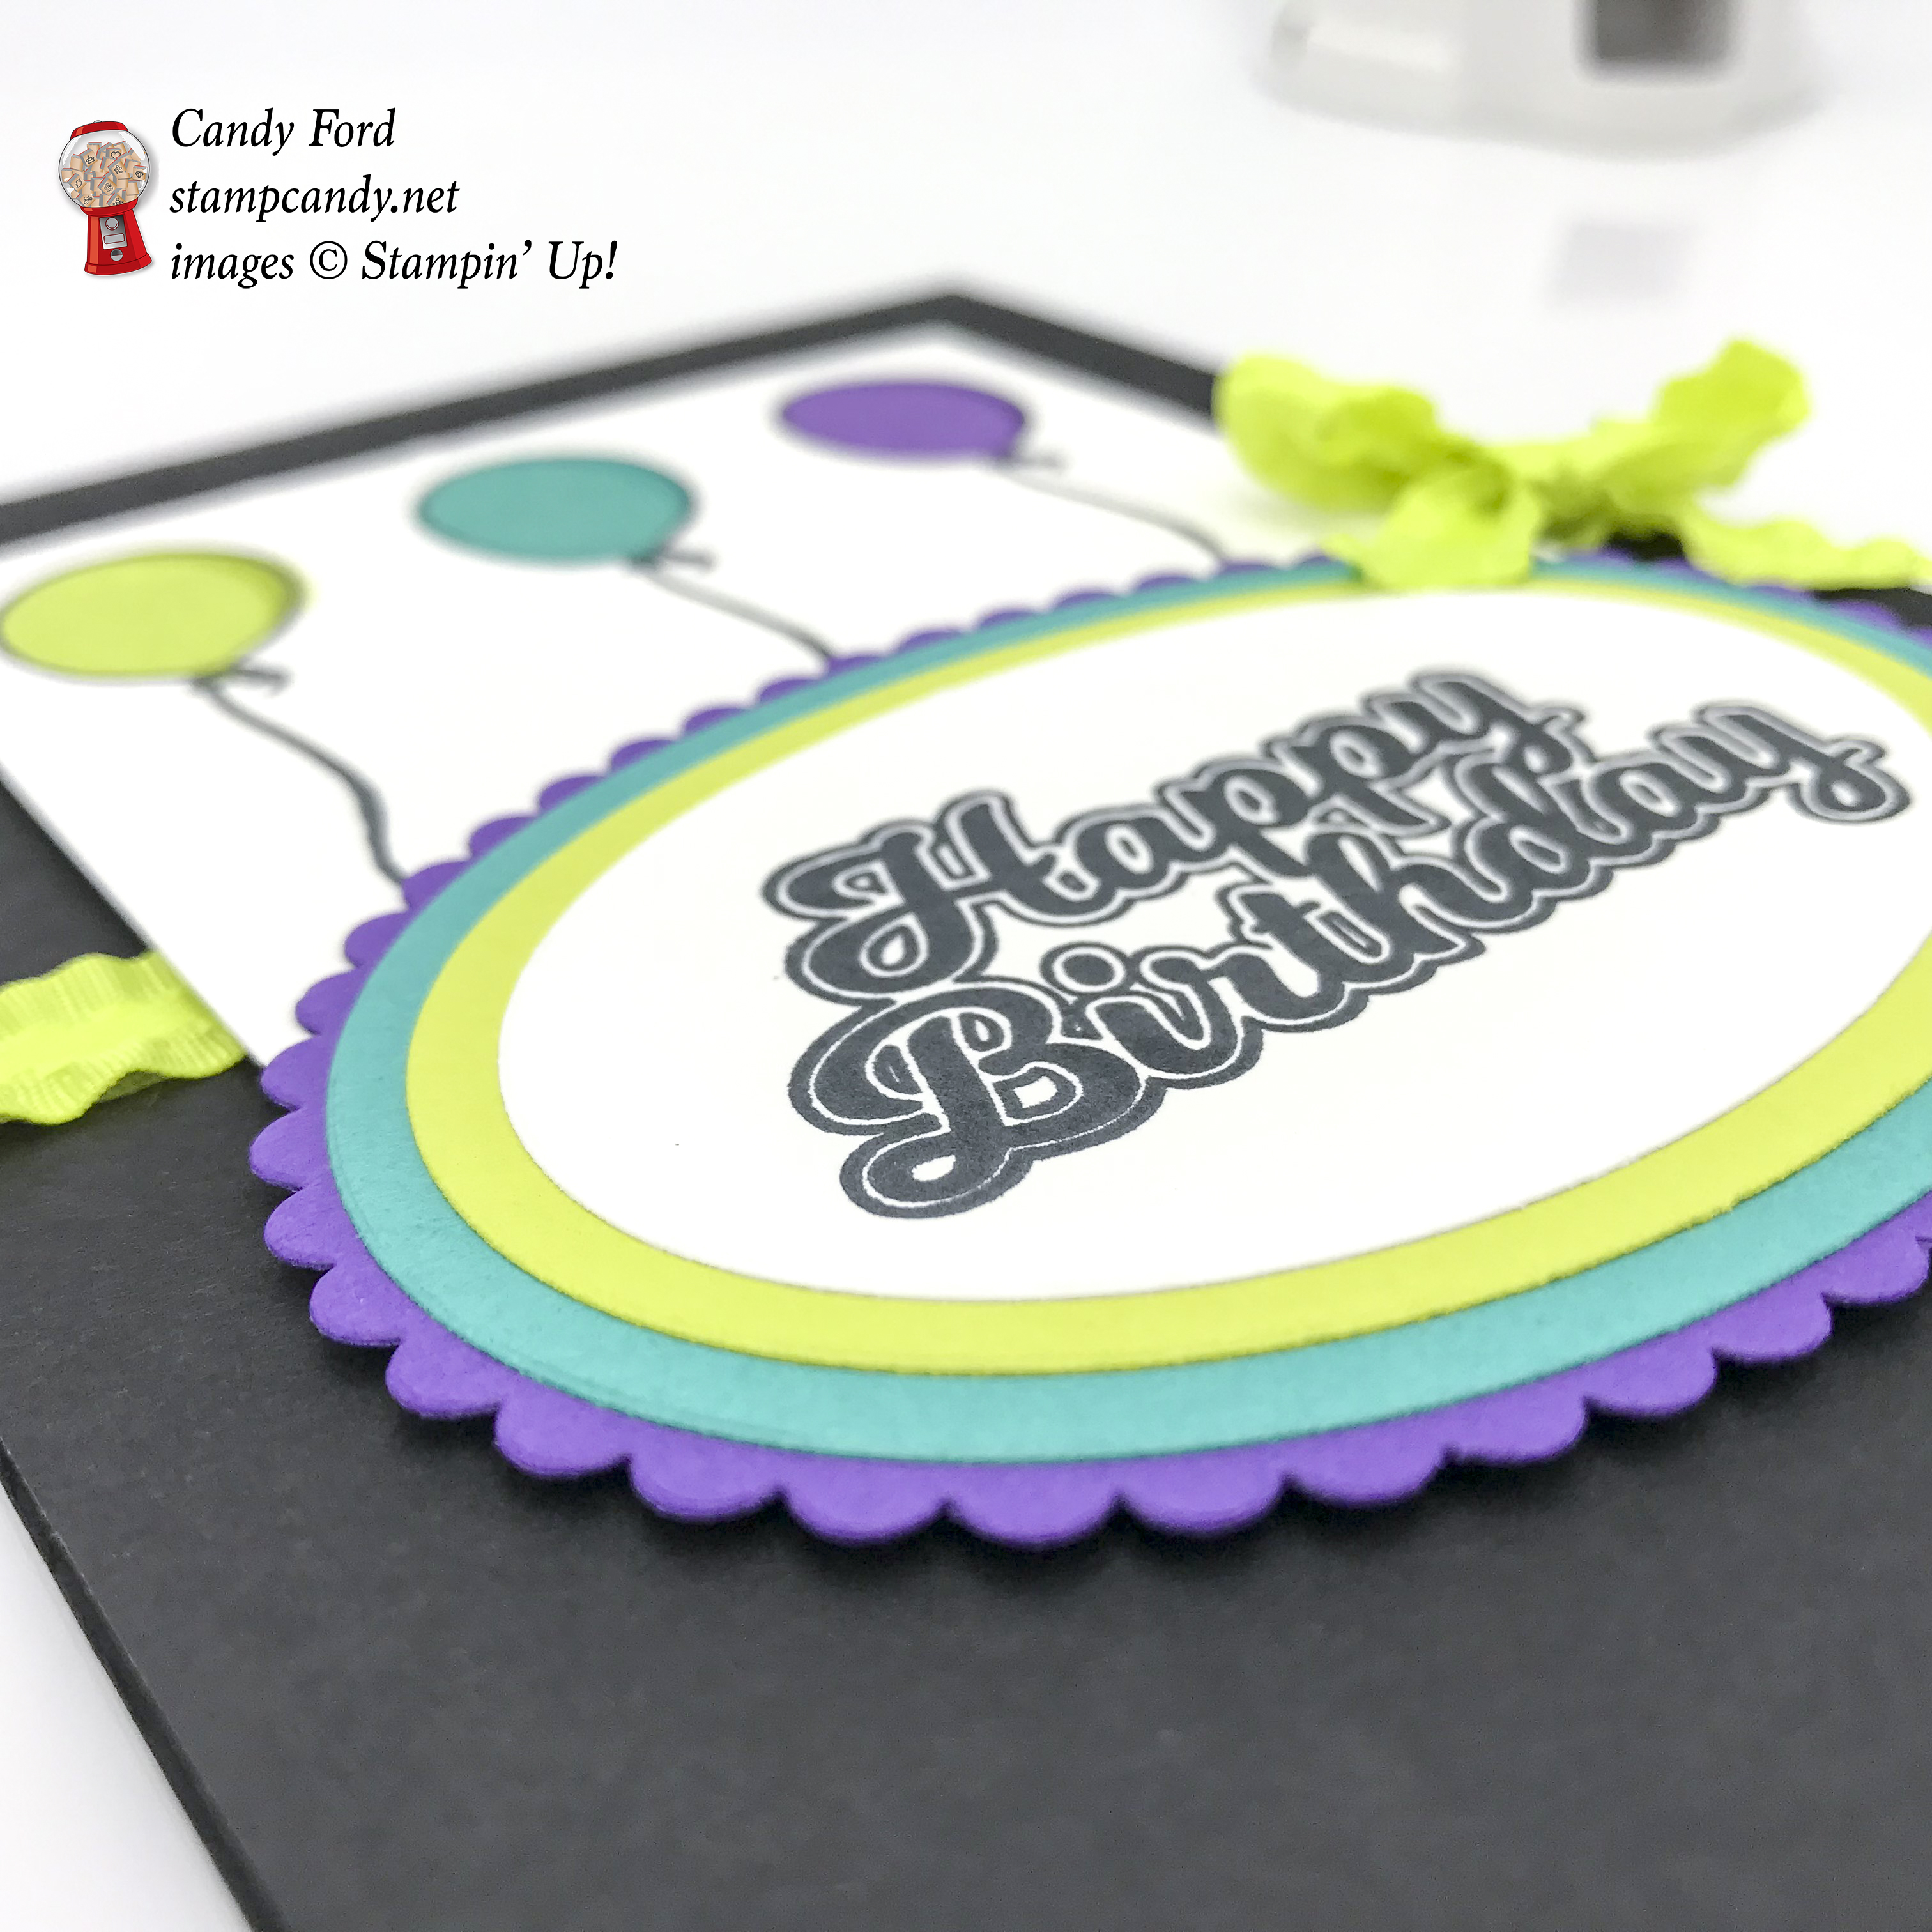 "Happy Birthday card made using the Blow Out the Candles stamp set, Layering Ovals Framelits Dies, and Lemon Lime Twist 3/8"" Mini Ruffled Ribbon by Stampin' Up! #stampcandy"